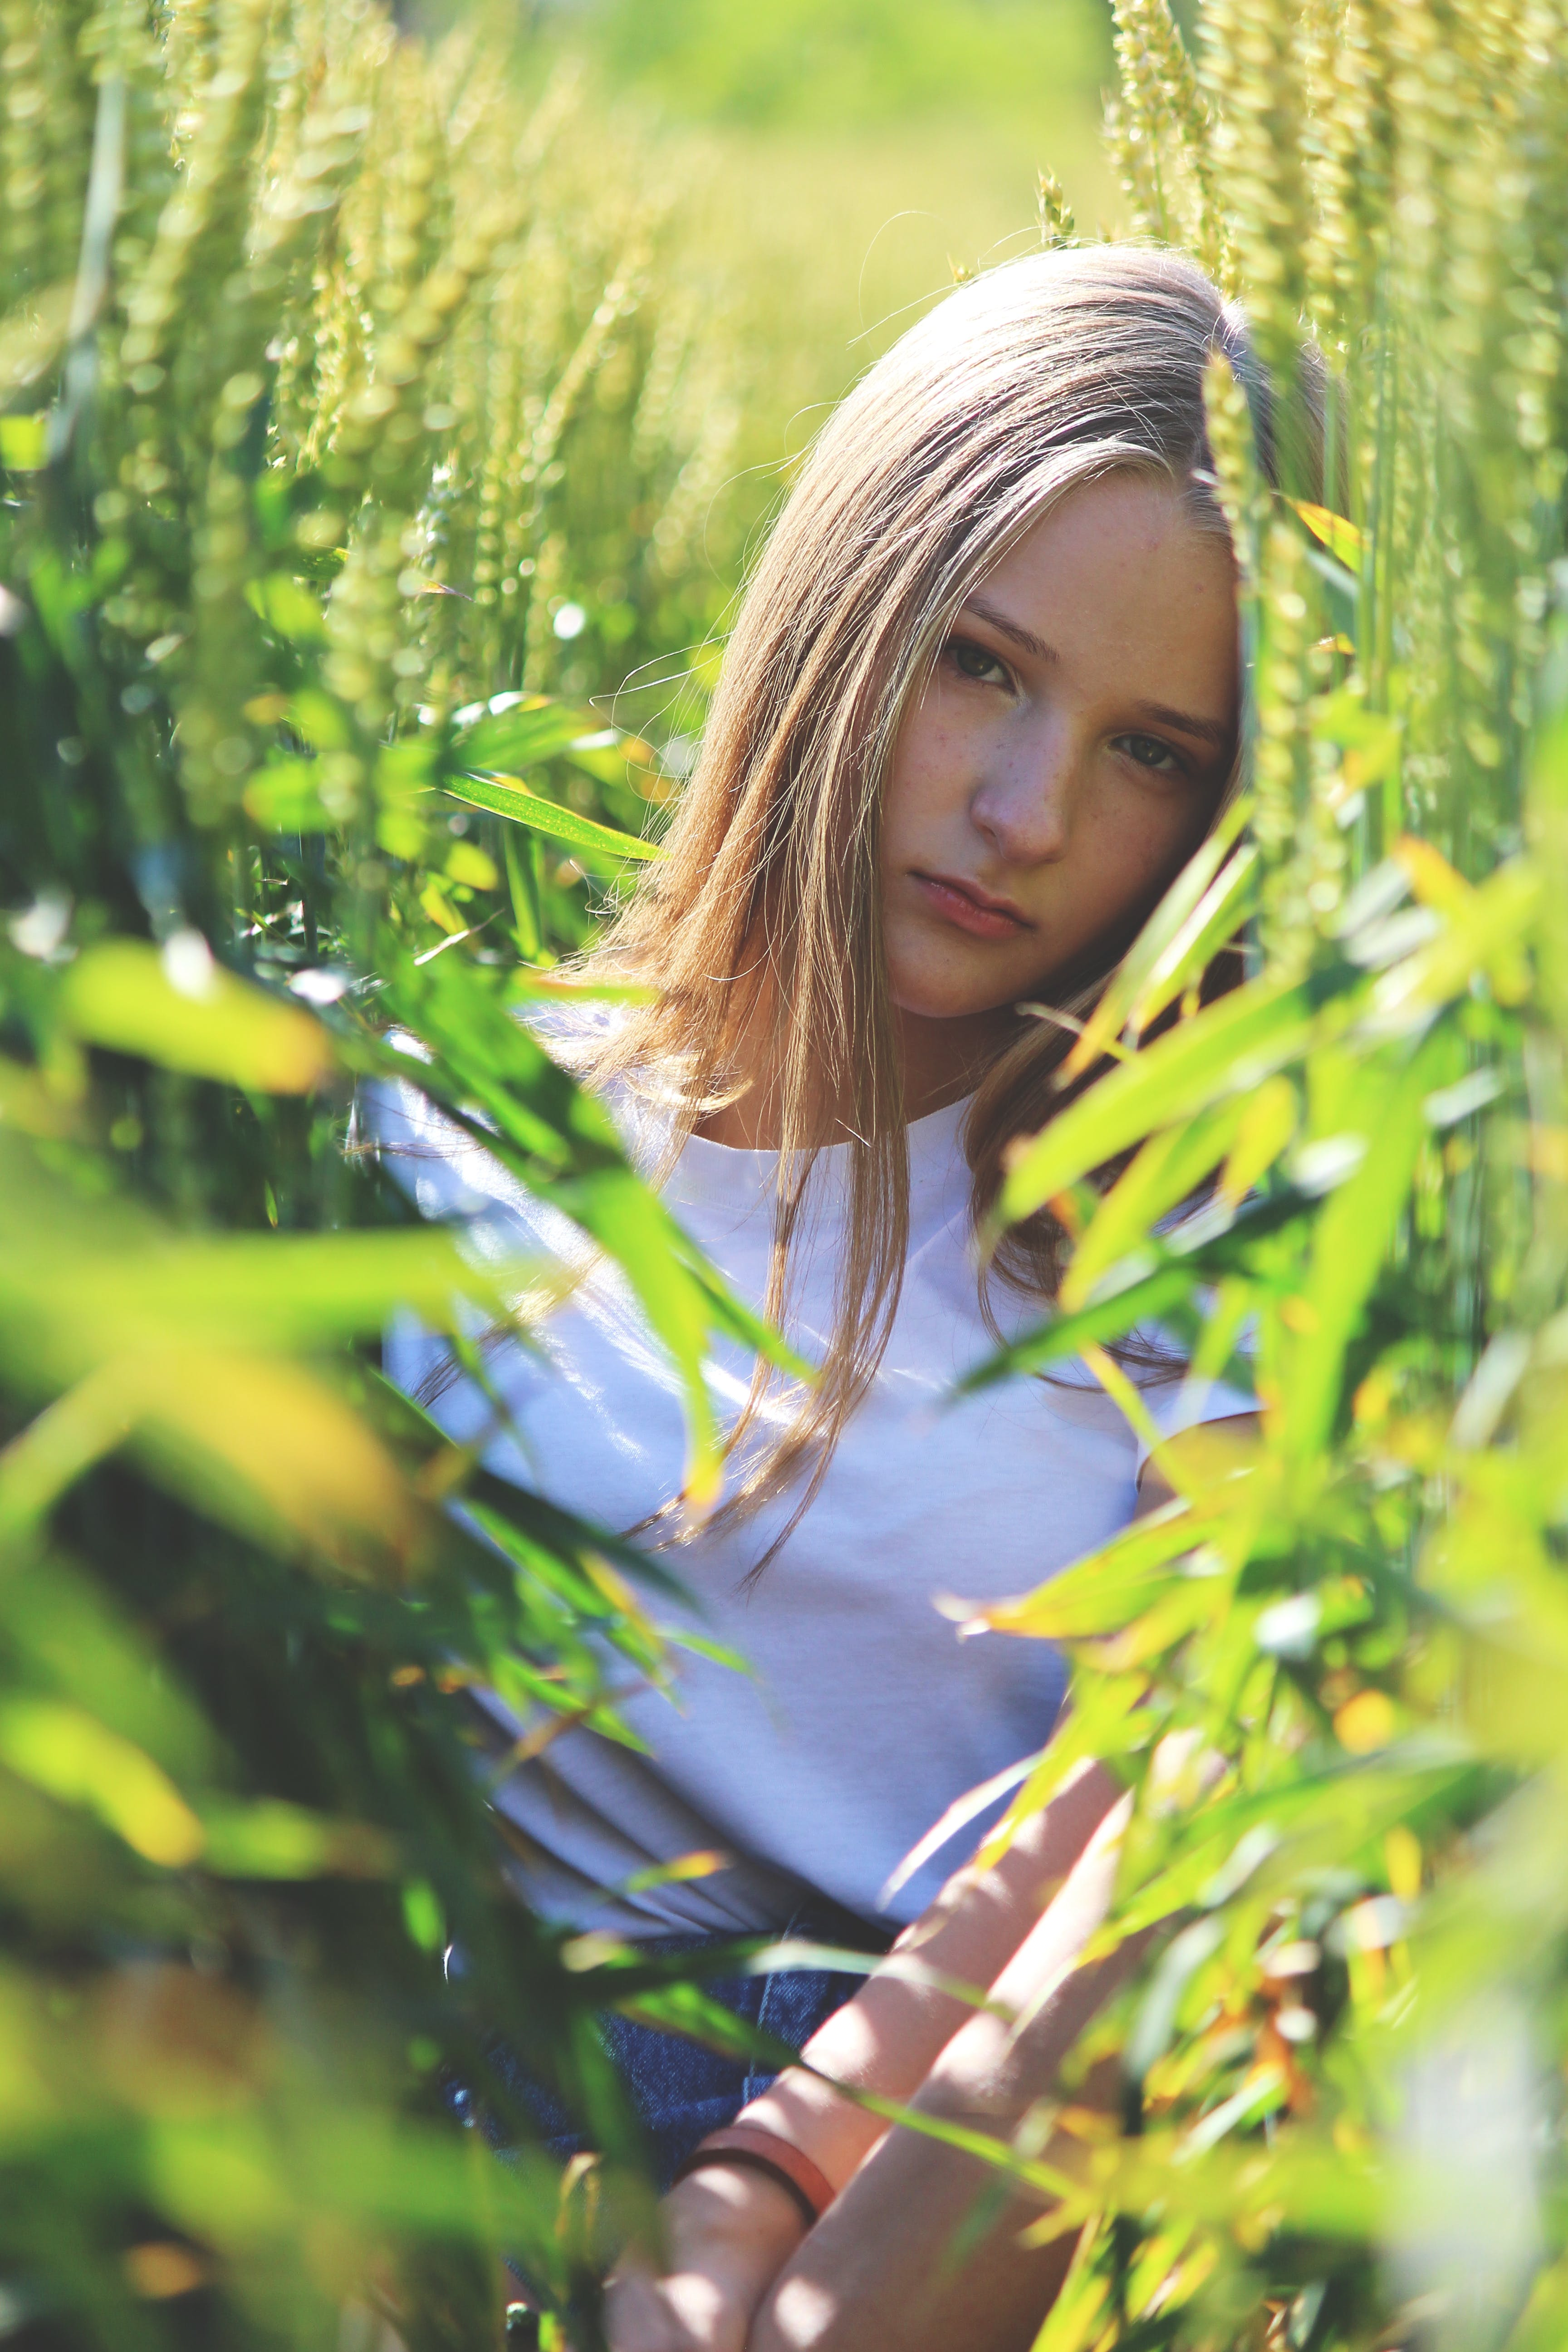 Selective Focus Photo of Woman Wearing White Shirt Between Green Wheat